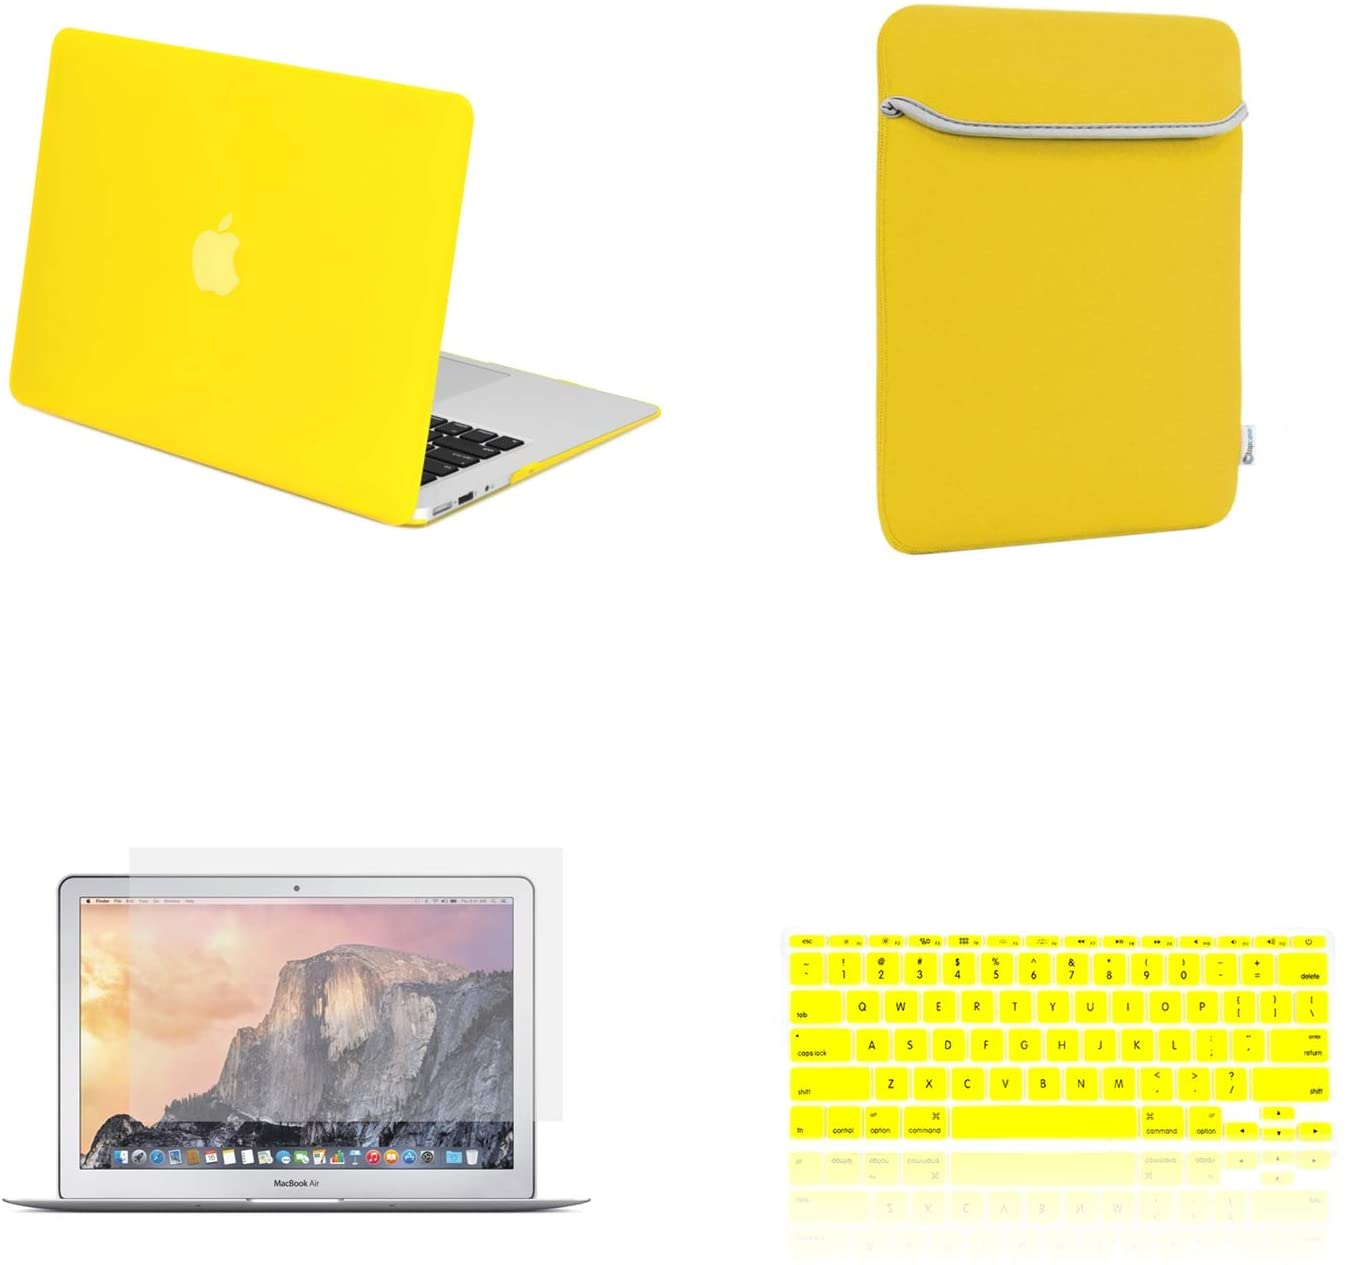 TOP CASE - 4 in 1 Essential Bundle Rubberized Hard Case + Sleeve Bag + Transparent TPU Keyboard Cover + Screen Protector Compatible MacBook Air 11